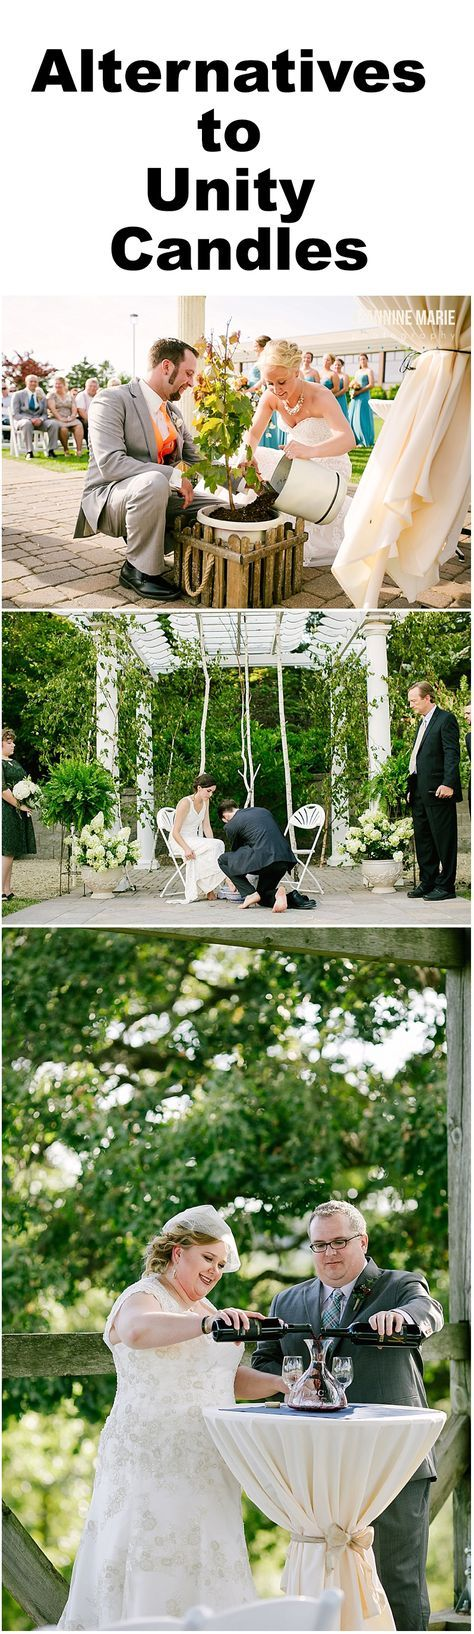 Looking For Unique Unity Candle Alternatives Your Wedding Ceremony Check Out These Great Ideas